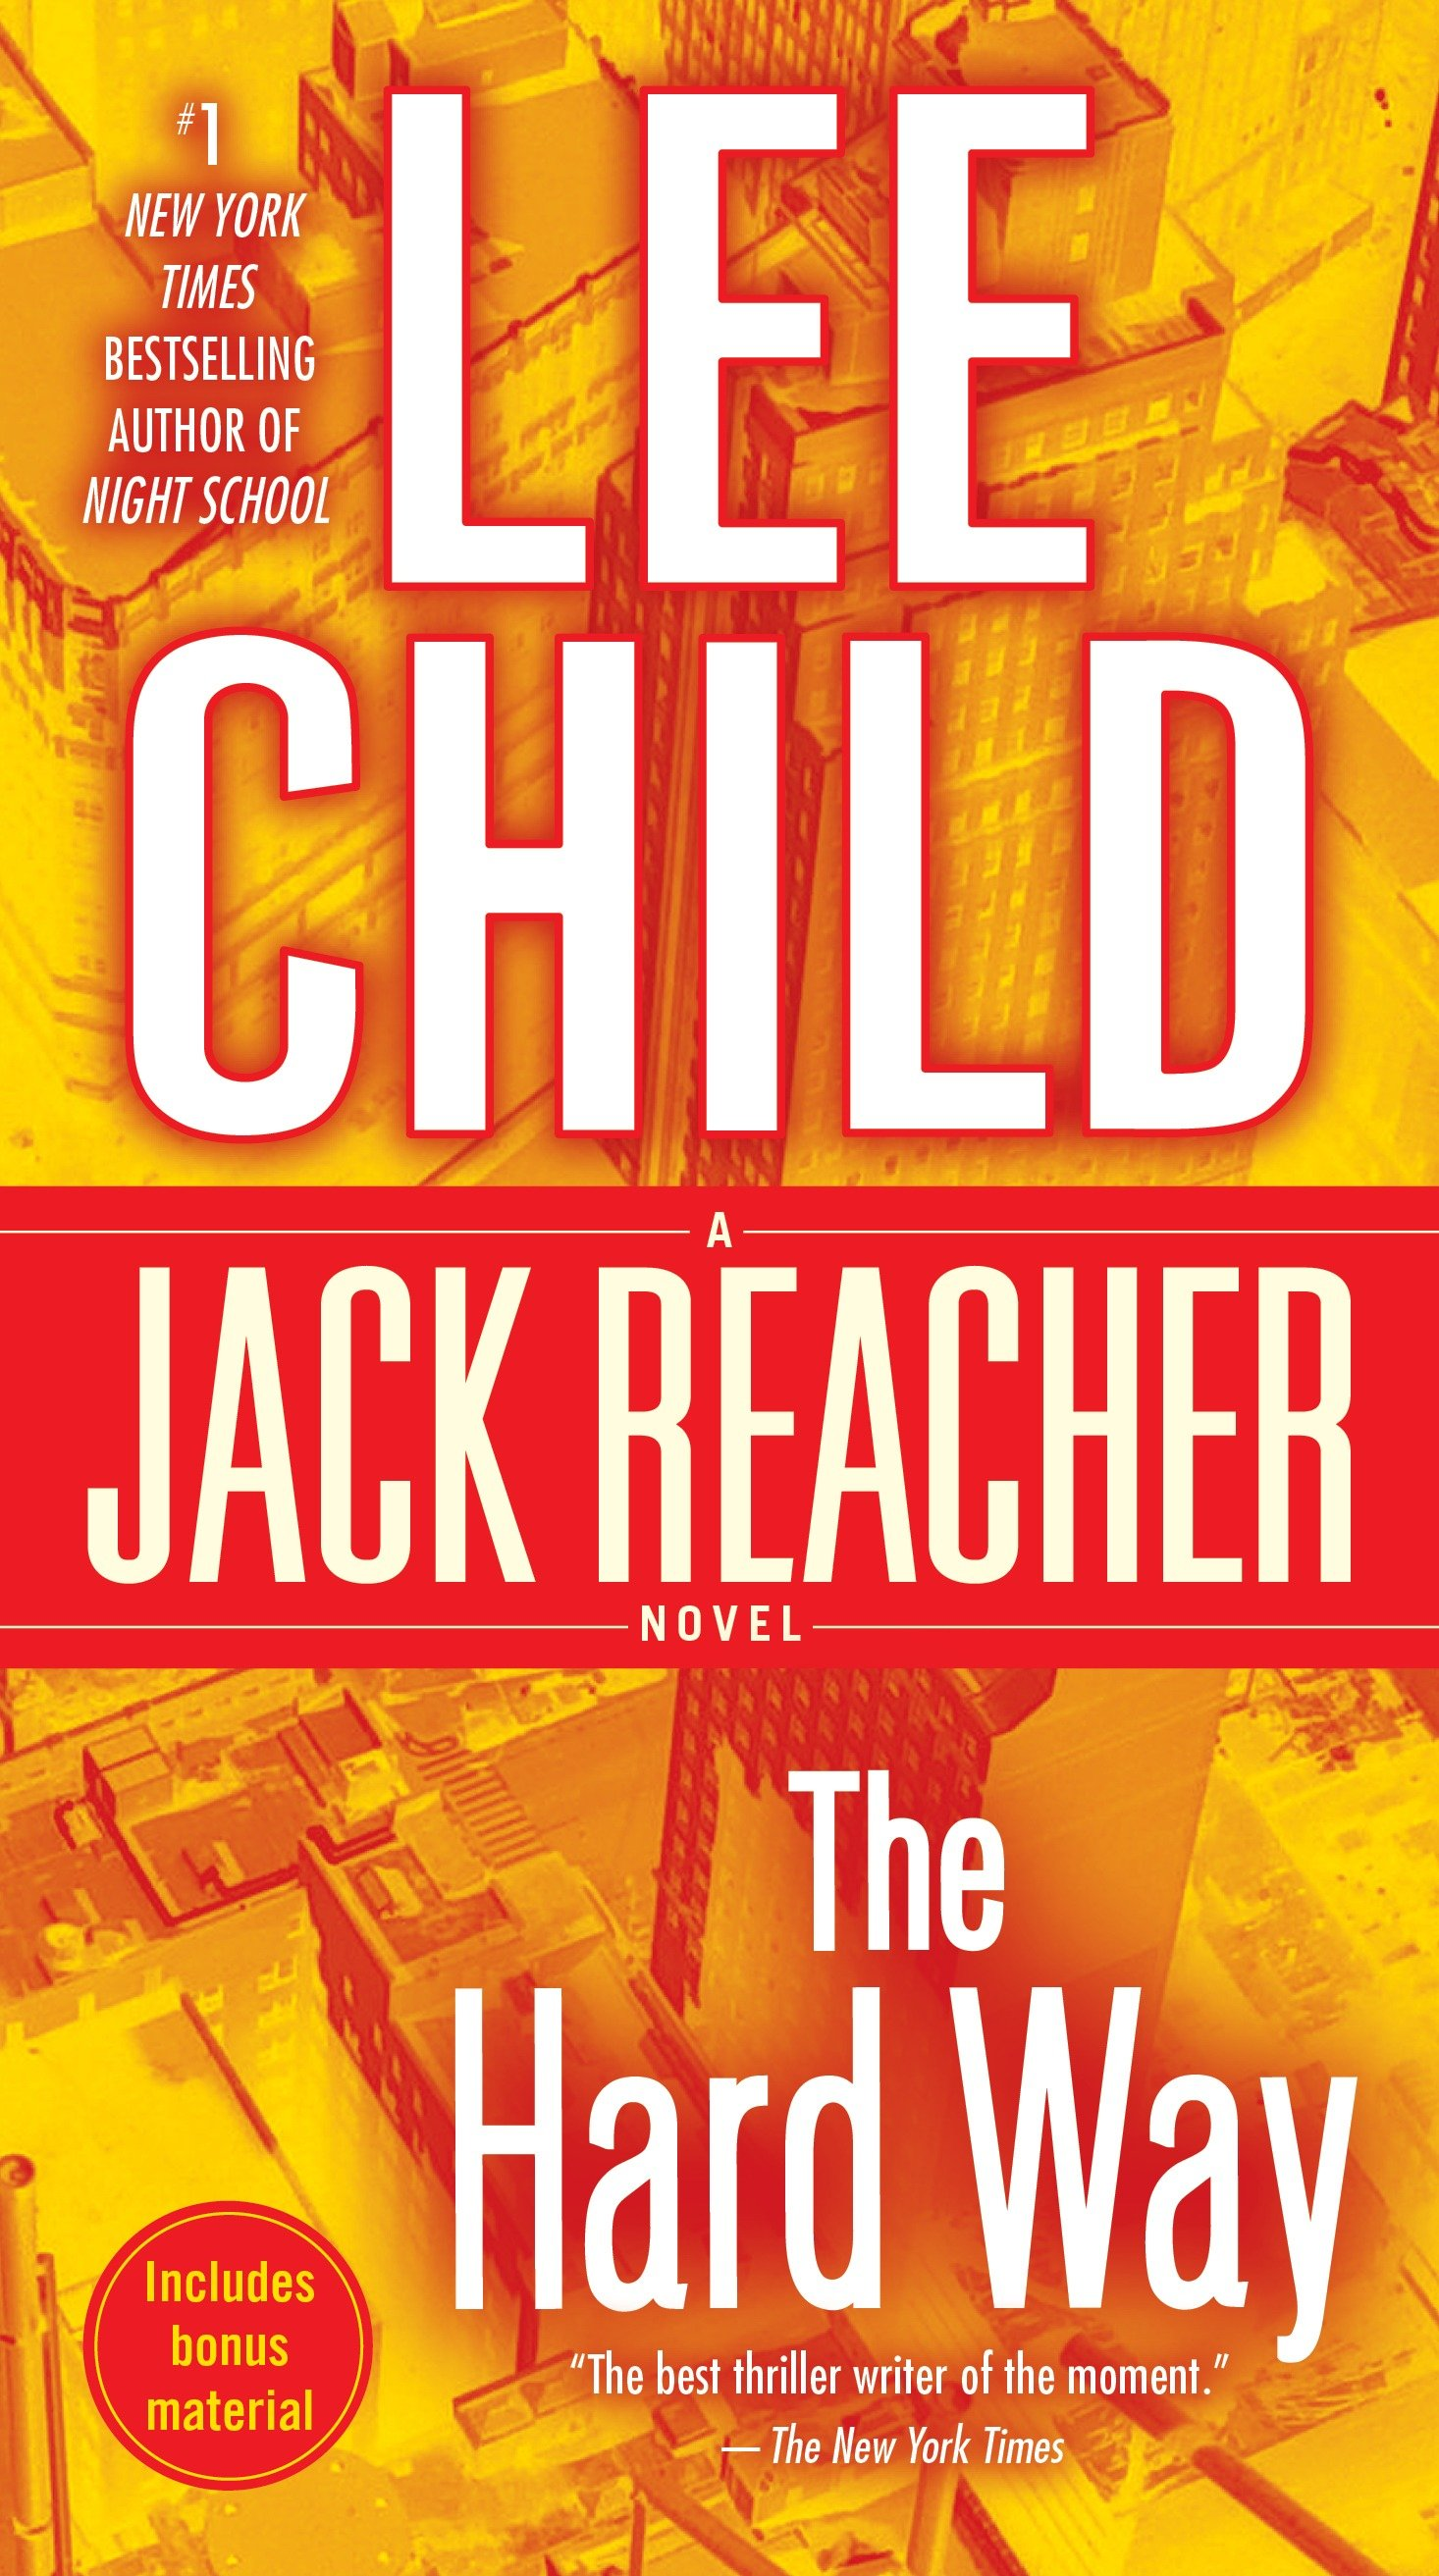 The hard way a Jack Reacher novel